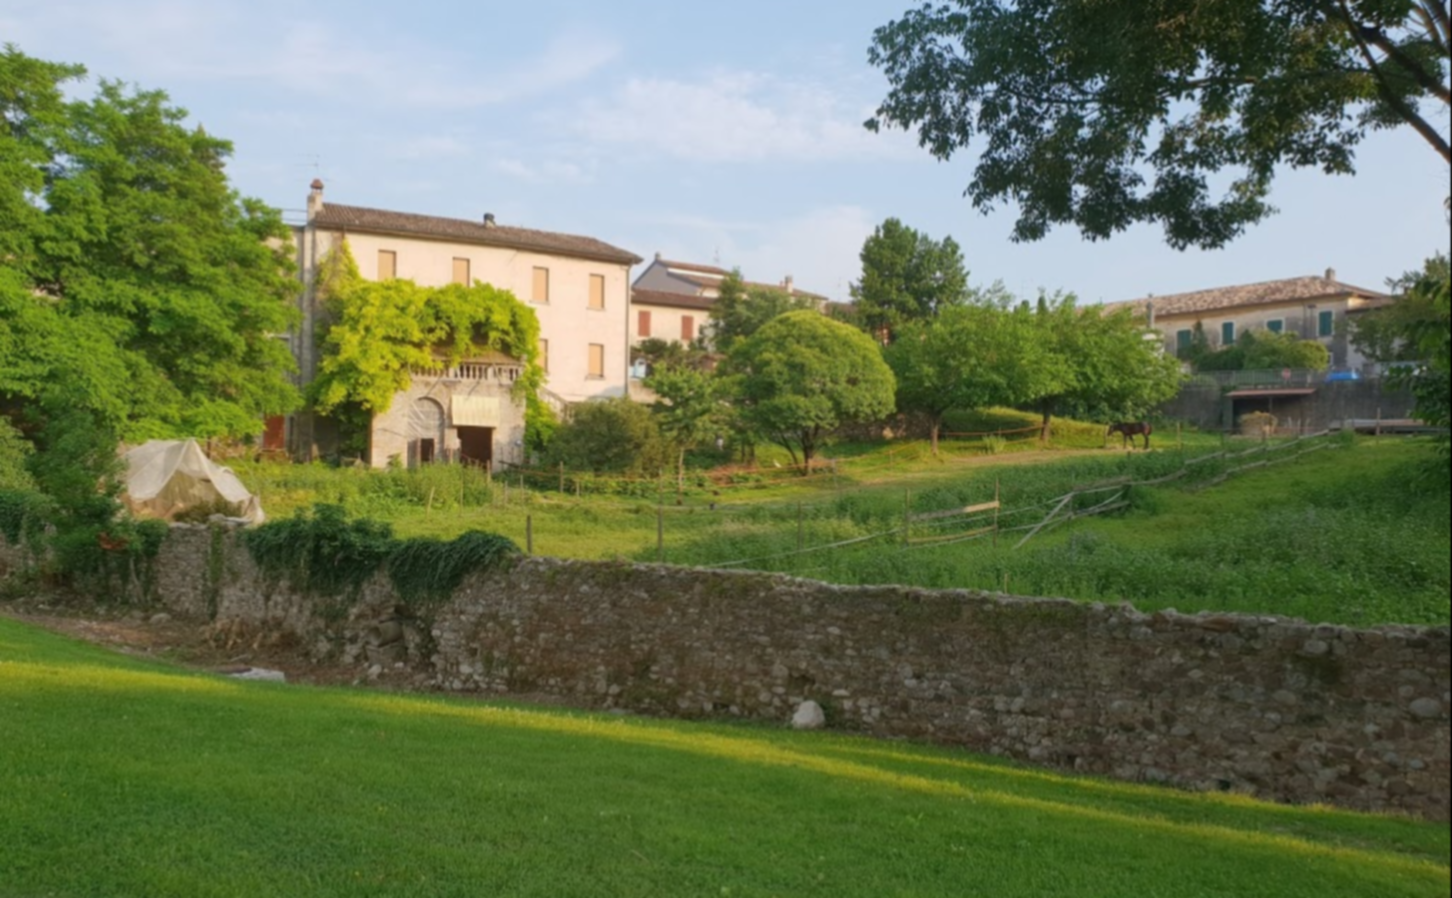 A close up of a lush green field at Casa in Castello.